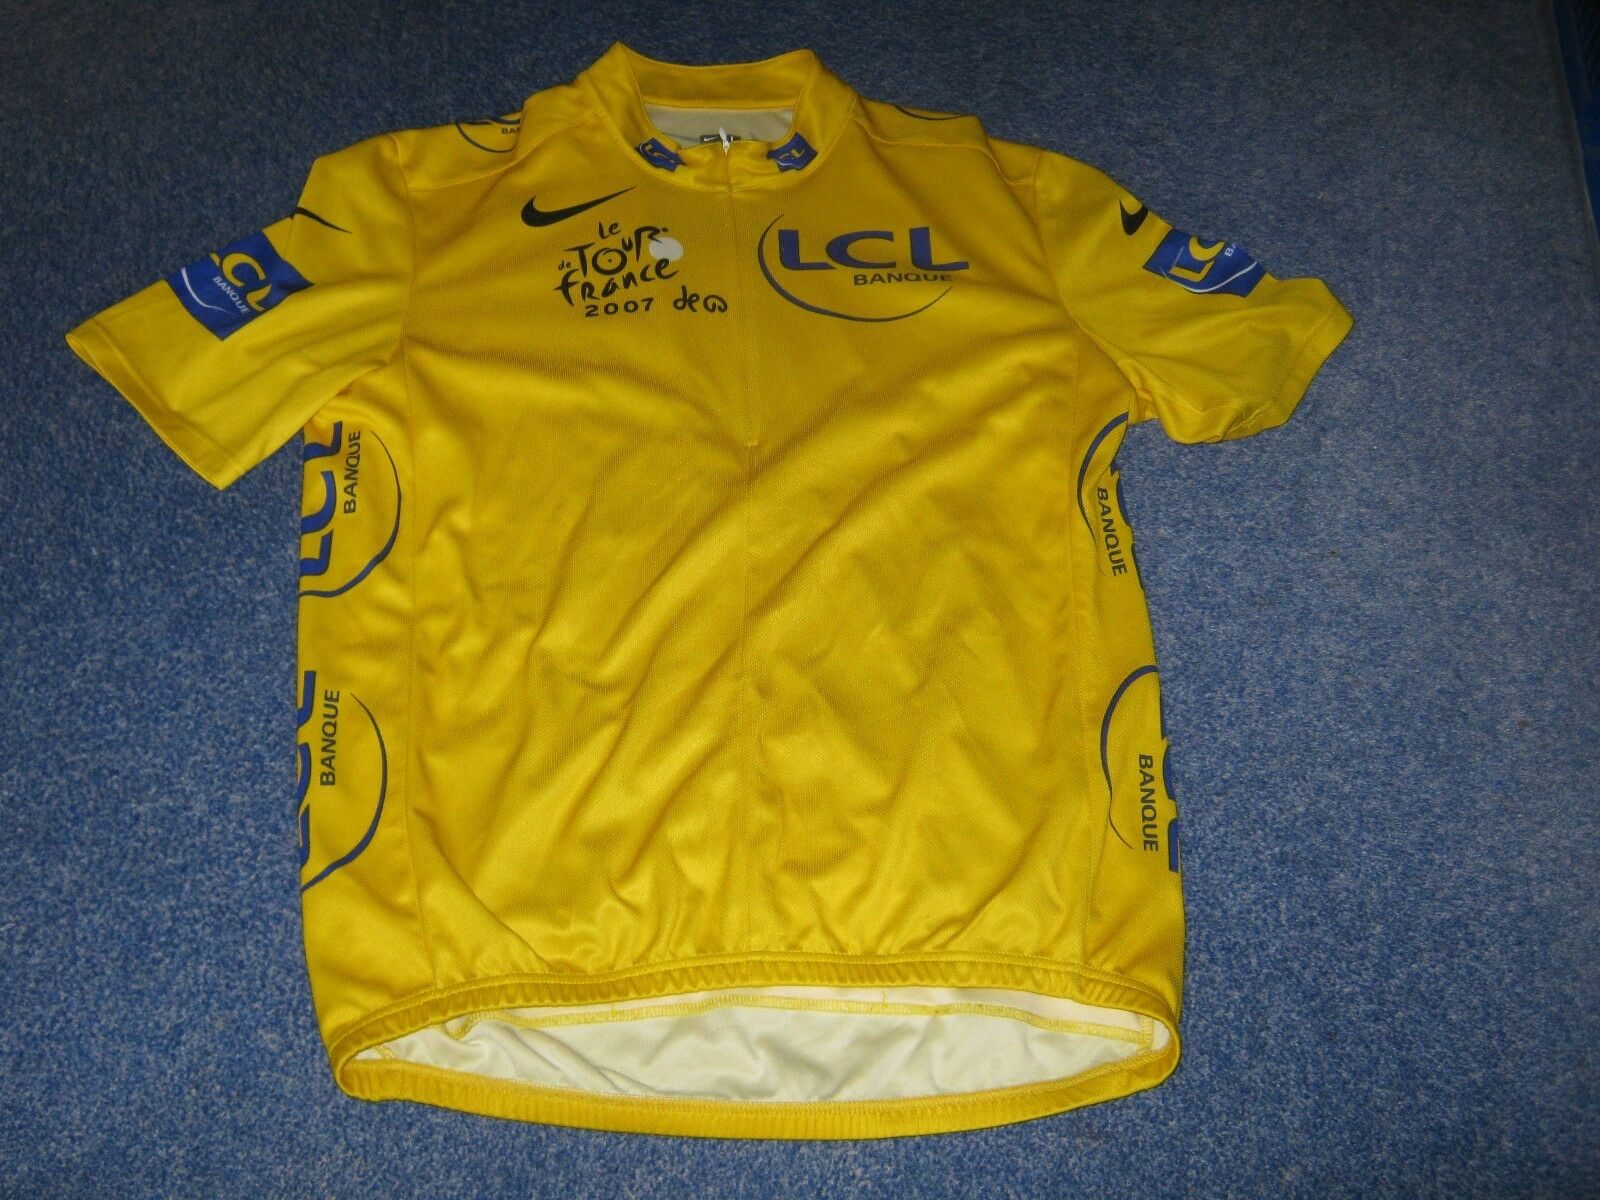 TOUR DE FRANCE 2007 NIKE YELLOW  LEADERS CYCLING JERSEY [Large adult]  order now lowest prices